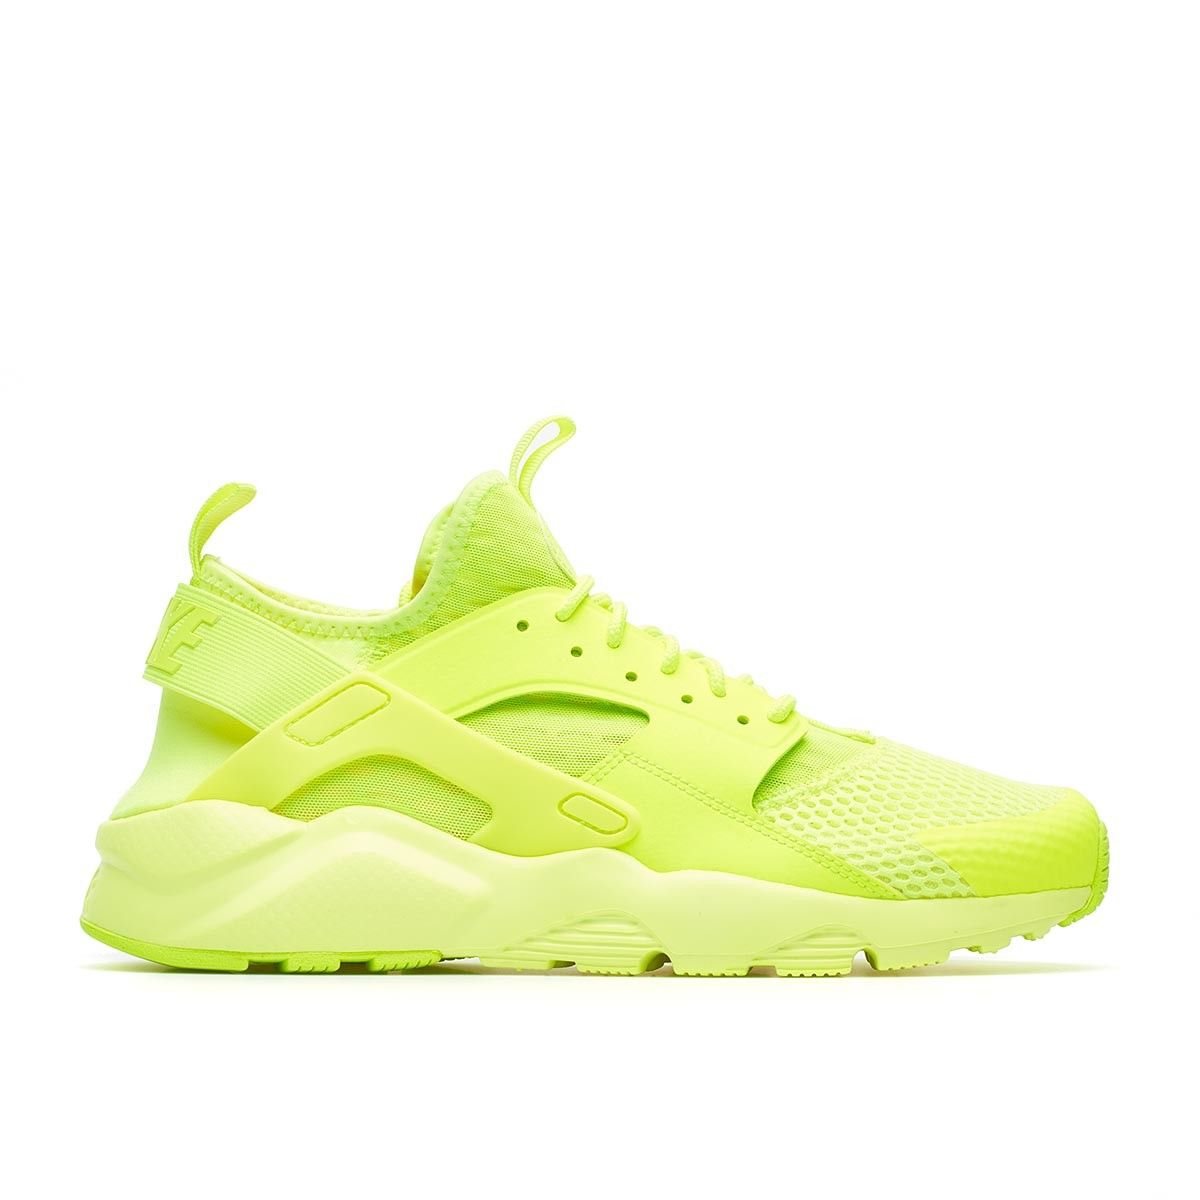 db5fec046df47 Nike Air Huarache Run Ultra Br from the Summer  16 collection in volt